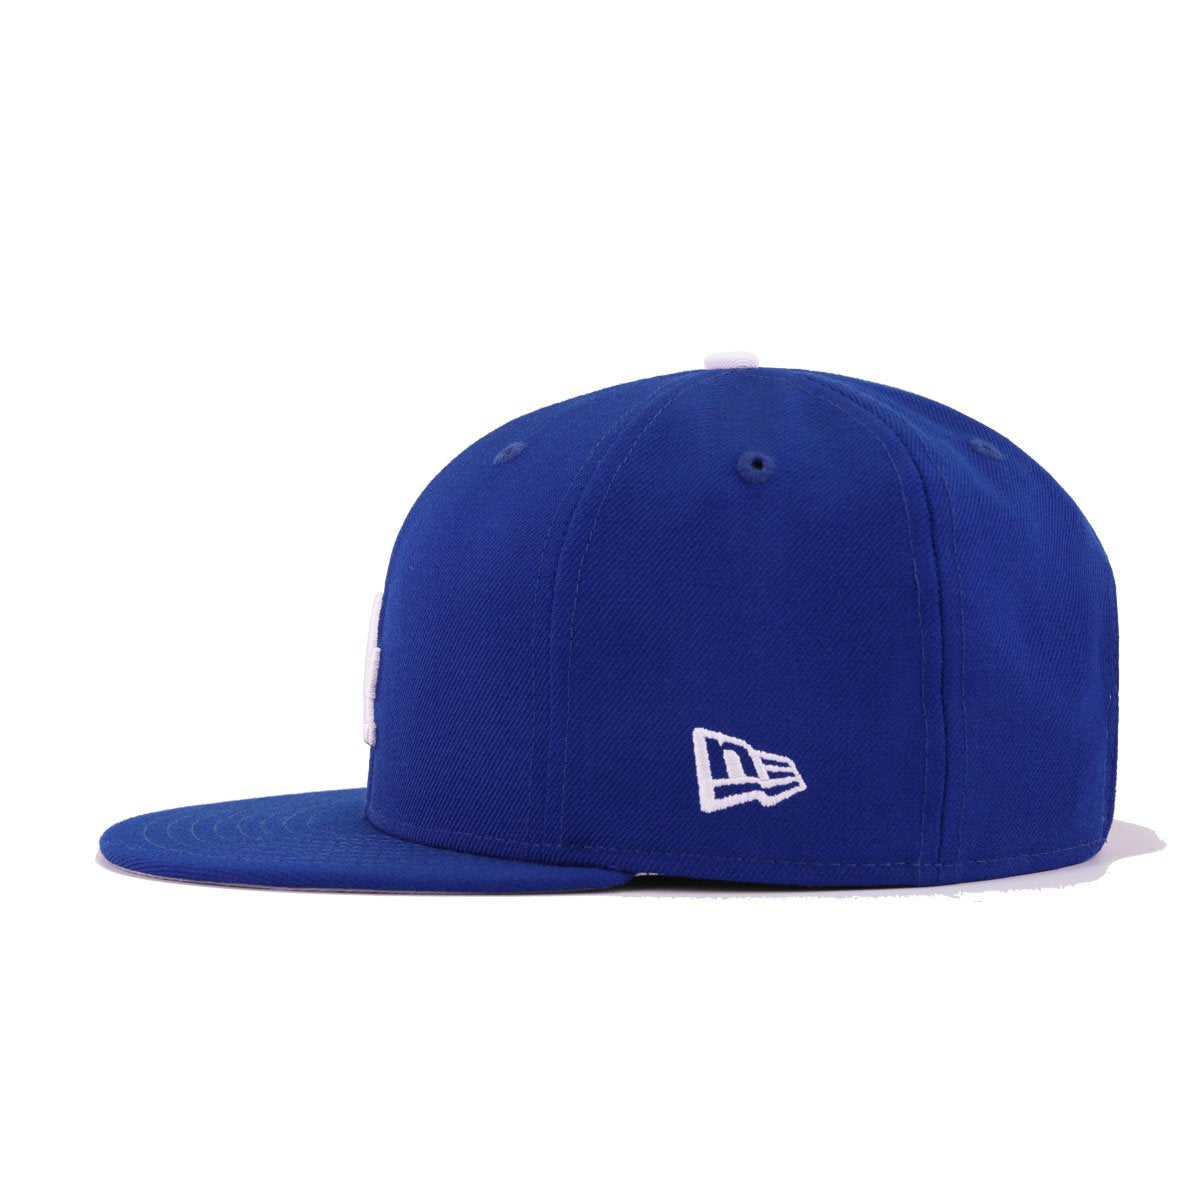 Los Angeles Dodgers Light Royal Blue White 50th Anniversary New Era 9Fifty Snapback